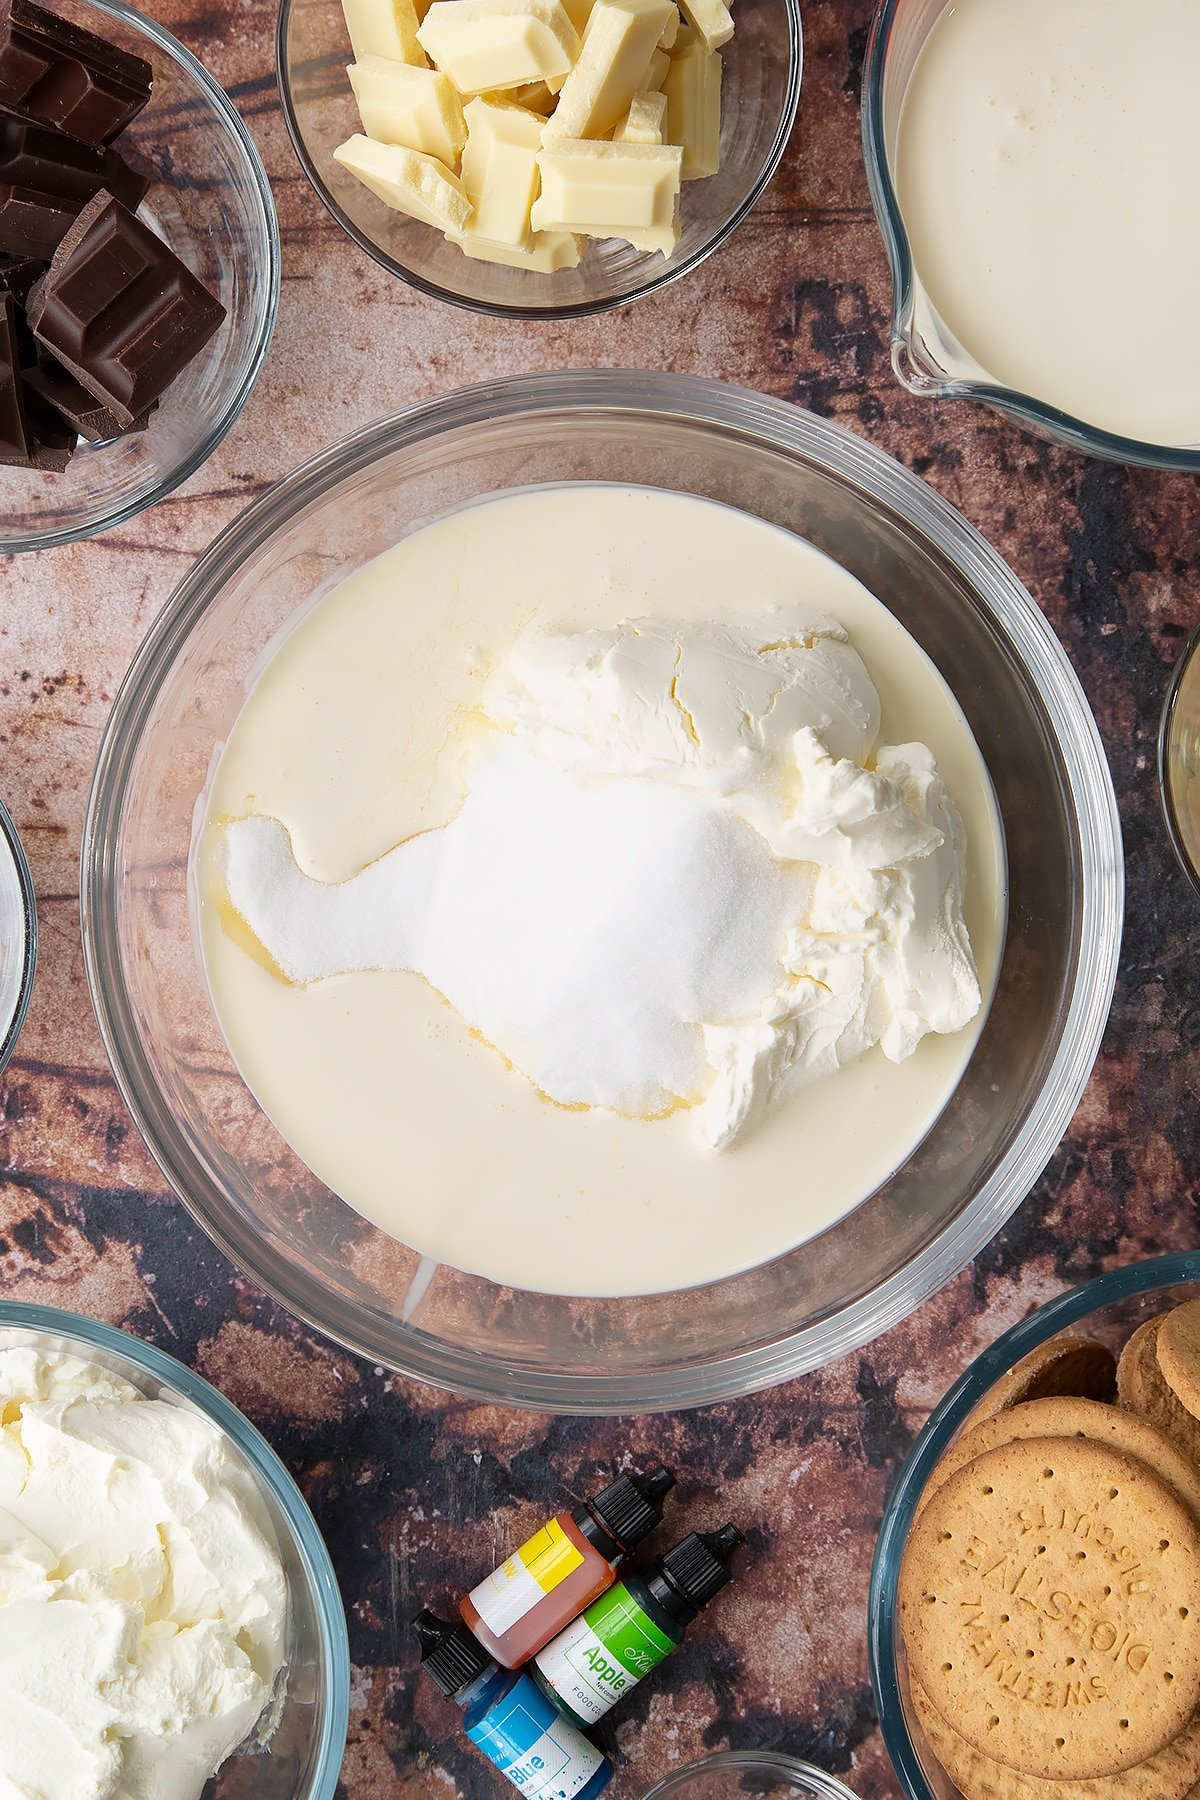 Double cream, cream cheese, peppermint extract and sugar in a glass bowl. Ingredients to make no bake mint cheesecake surround the bowl.